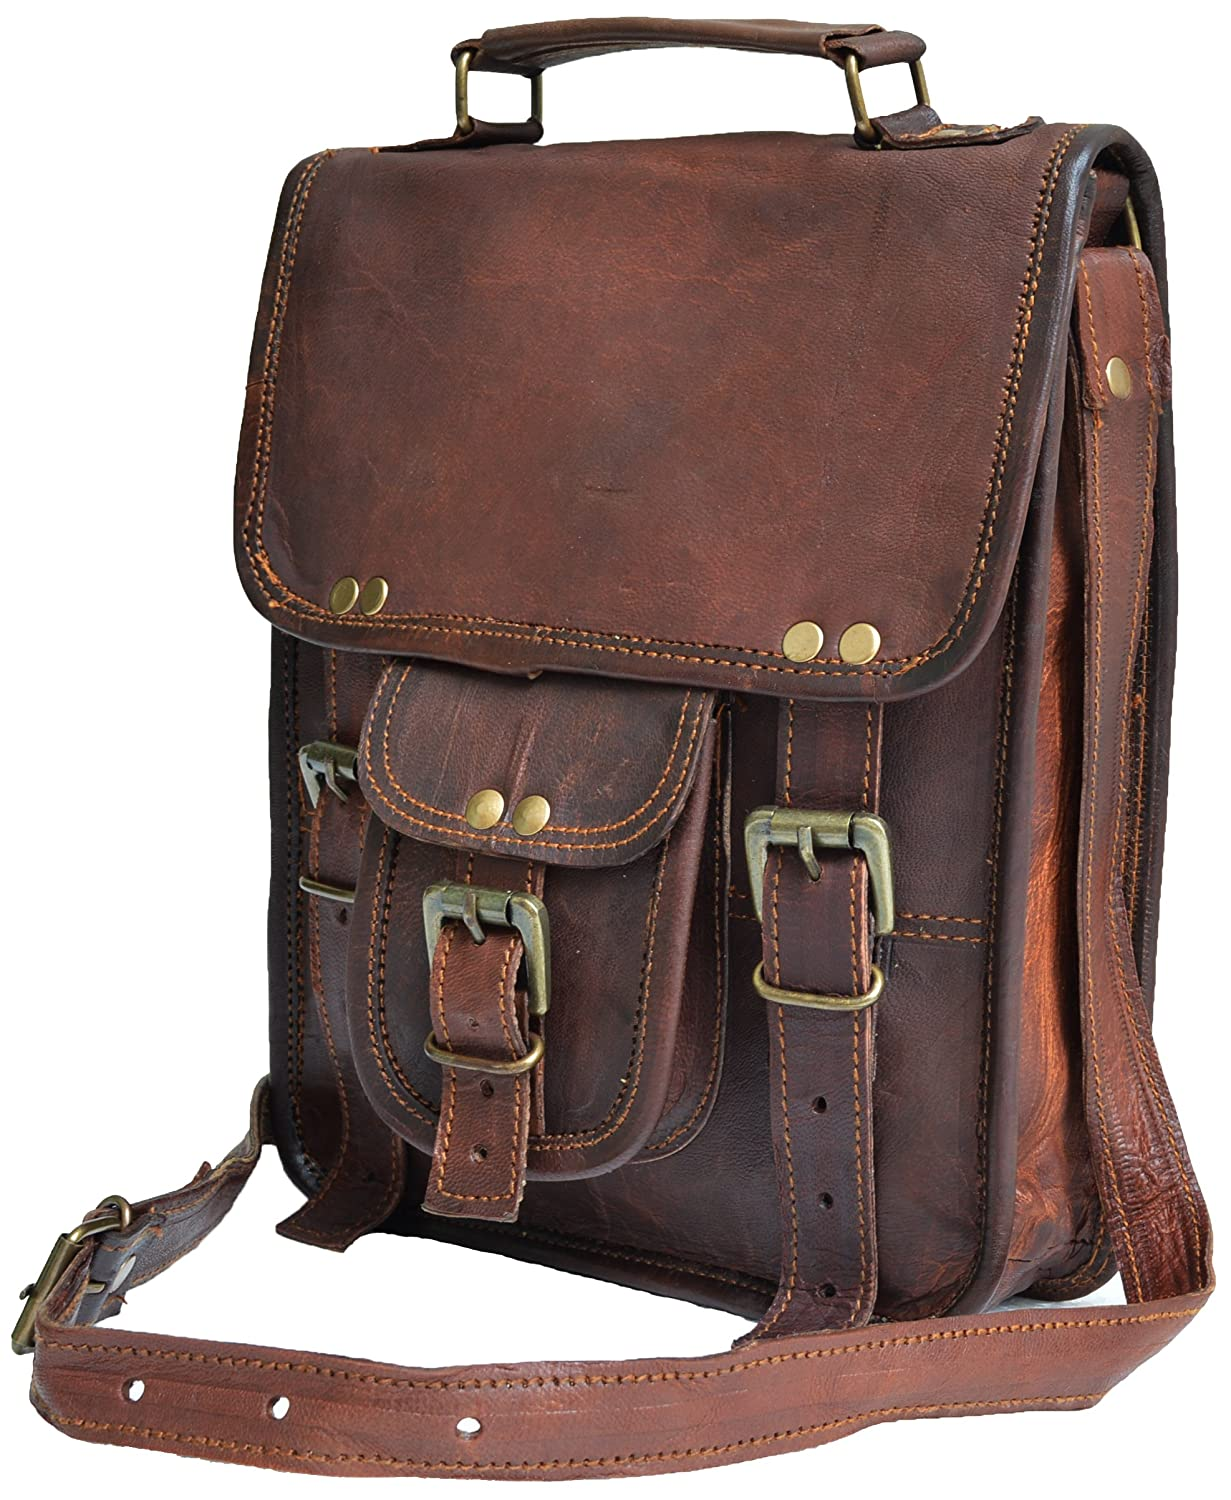 cc2c00b295 Amazon.com  Genuine distressed leather shoulder bag satchel for men  messenger bag ipad case tablet bag  Sports   Outdoors